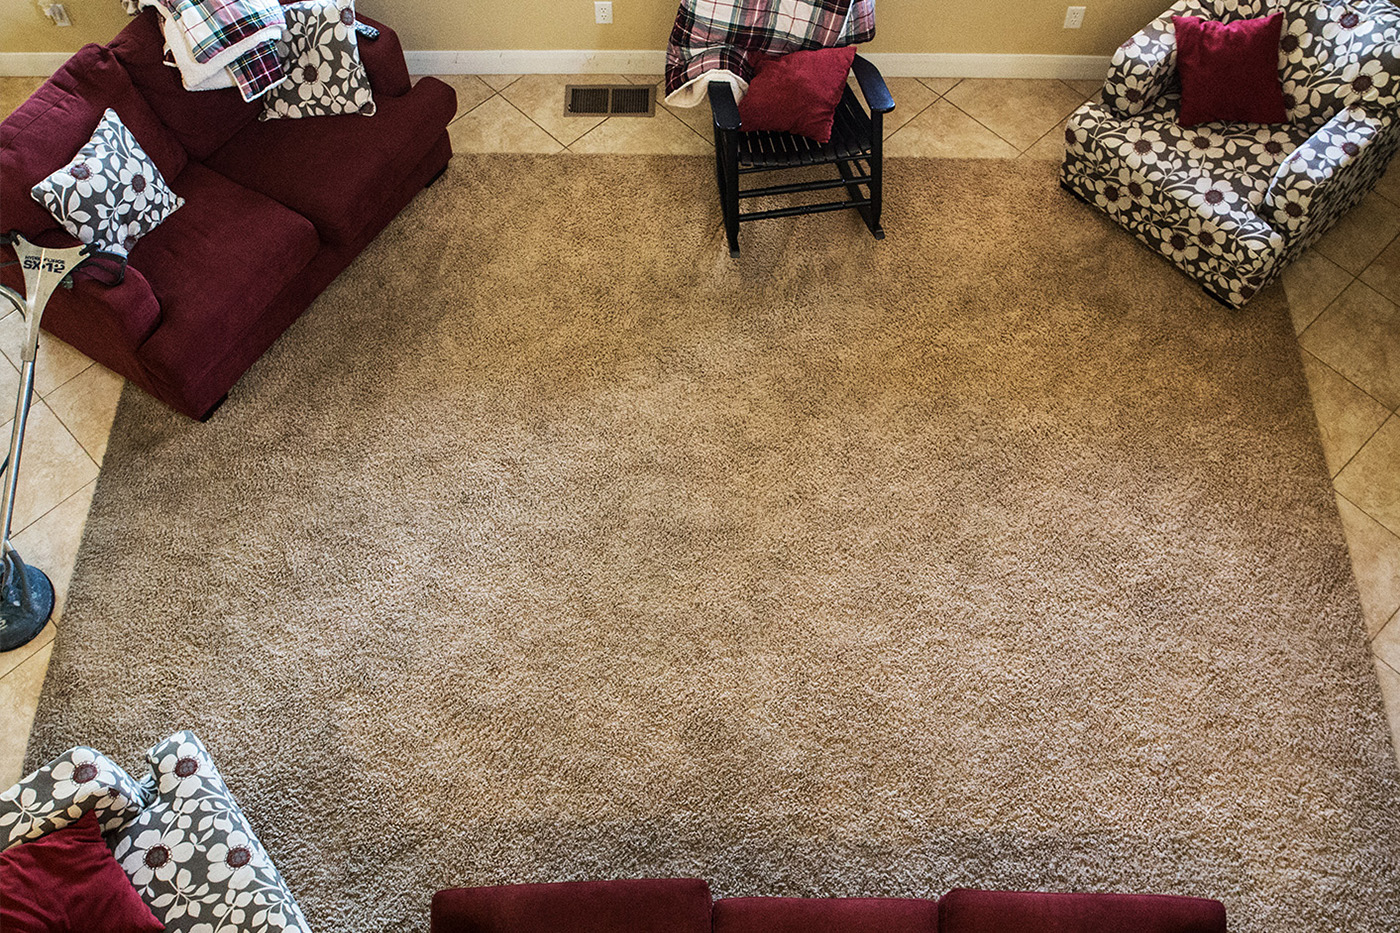 carpet cleaning professional saint george